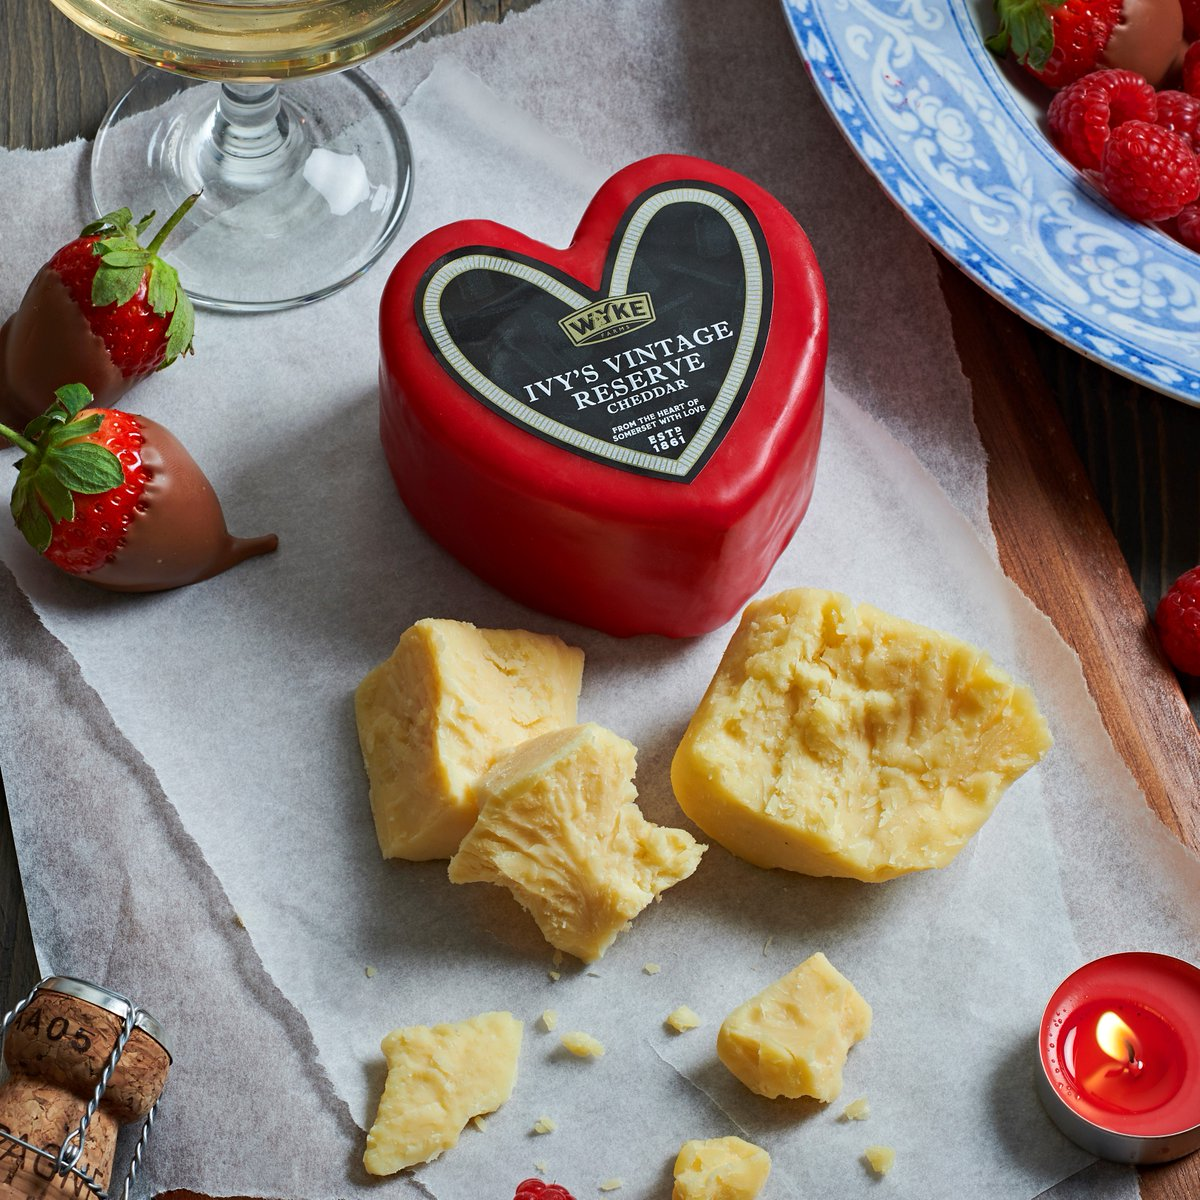 Say it with cheese this #ValentinesDay! We're giving 5 lucky cheese-lovers the chance to #WIN one of our limited edition hearts. To enter simply RT & reply telling us who you'd love to share a piece of your heart with on the 14th February. Winners announced midday 09.02.18.